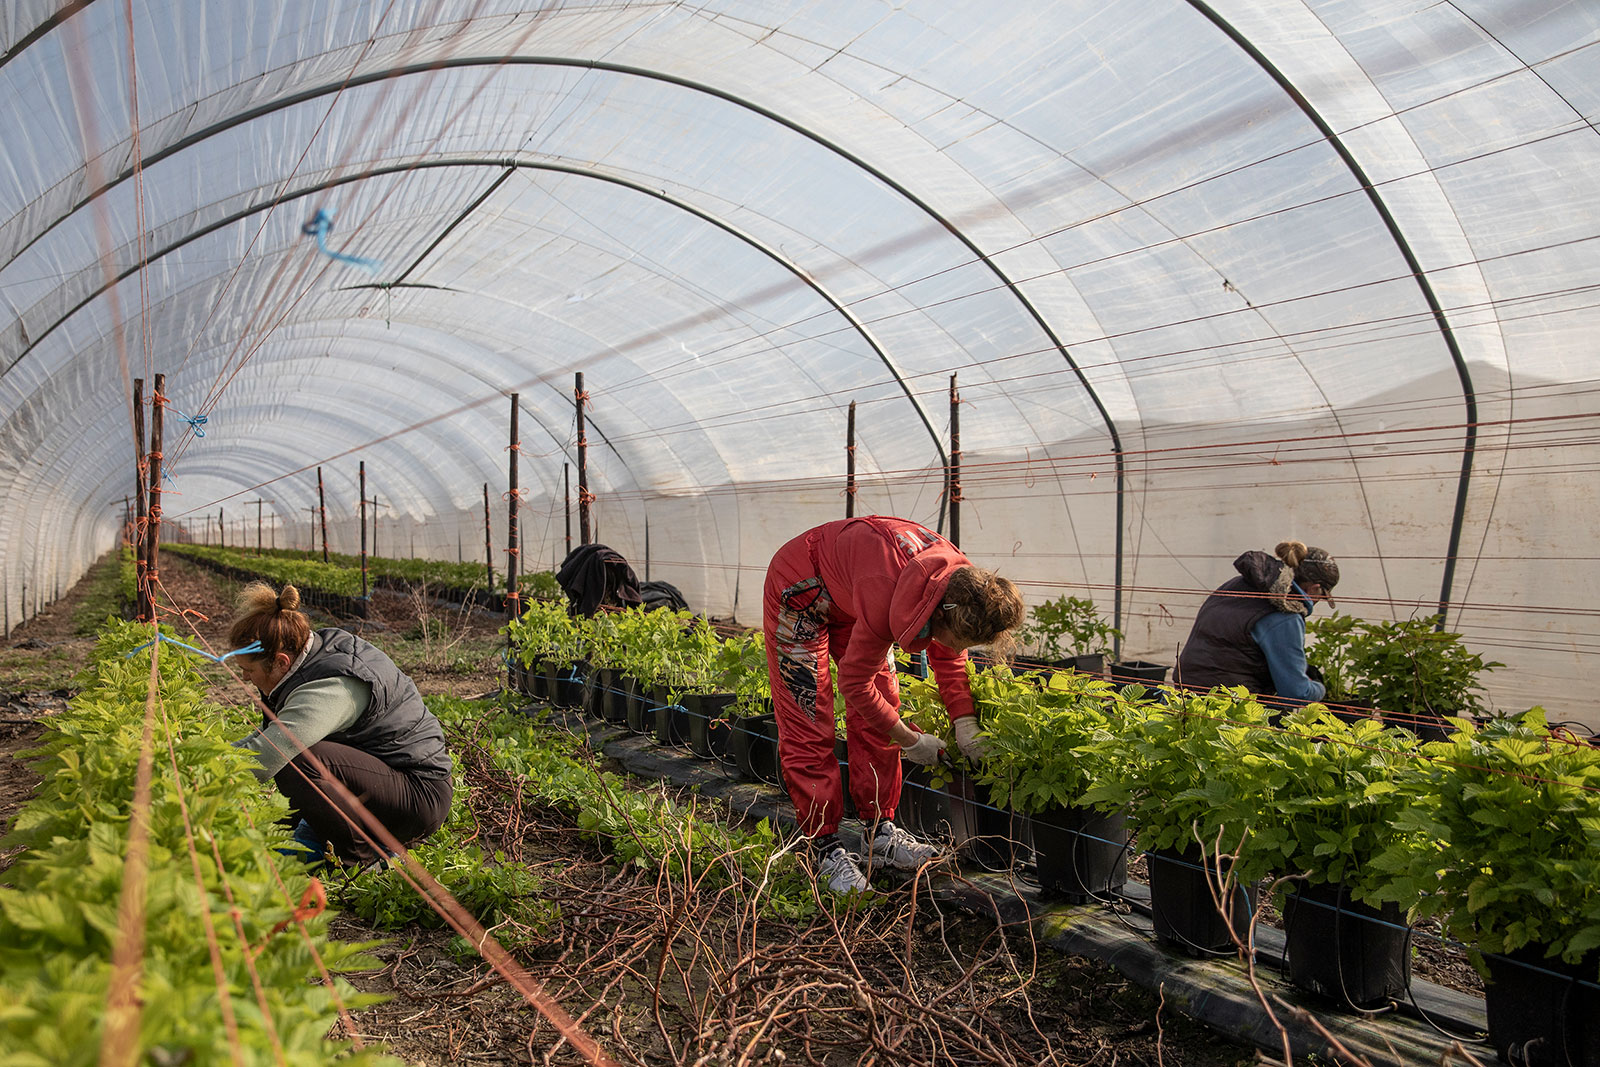 Seasonal workers tend to raspberries at a farm in Rochester, England.